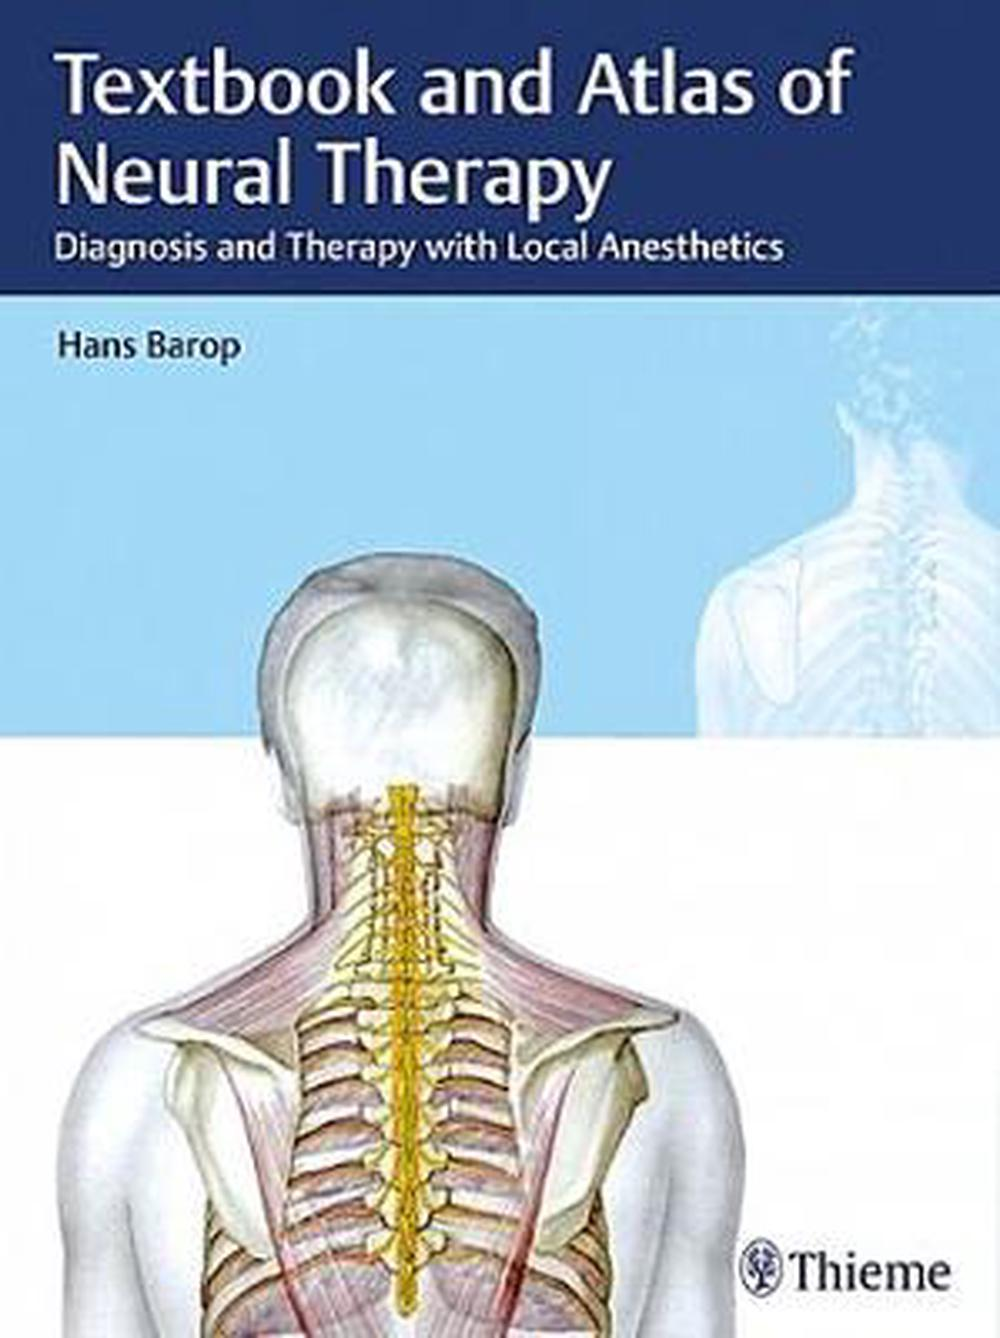 Textbook and Atlas of Neural Therapy: Diagnosis and Therapy with Local Anesthetics